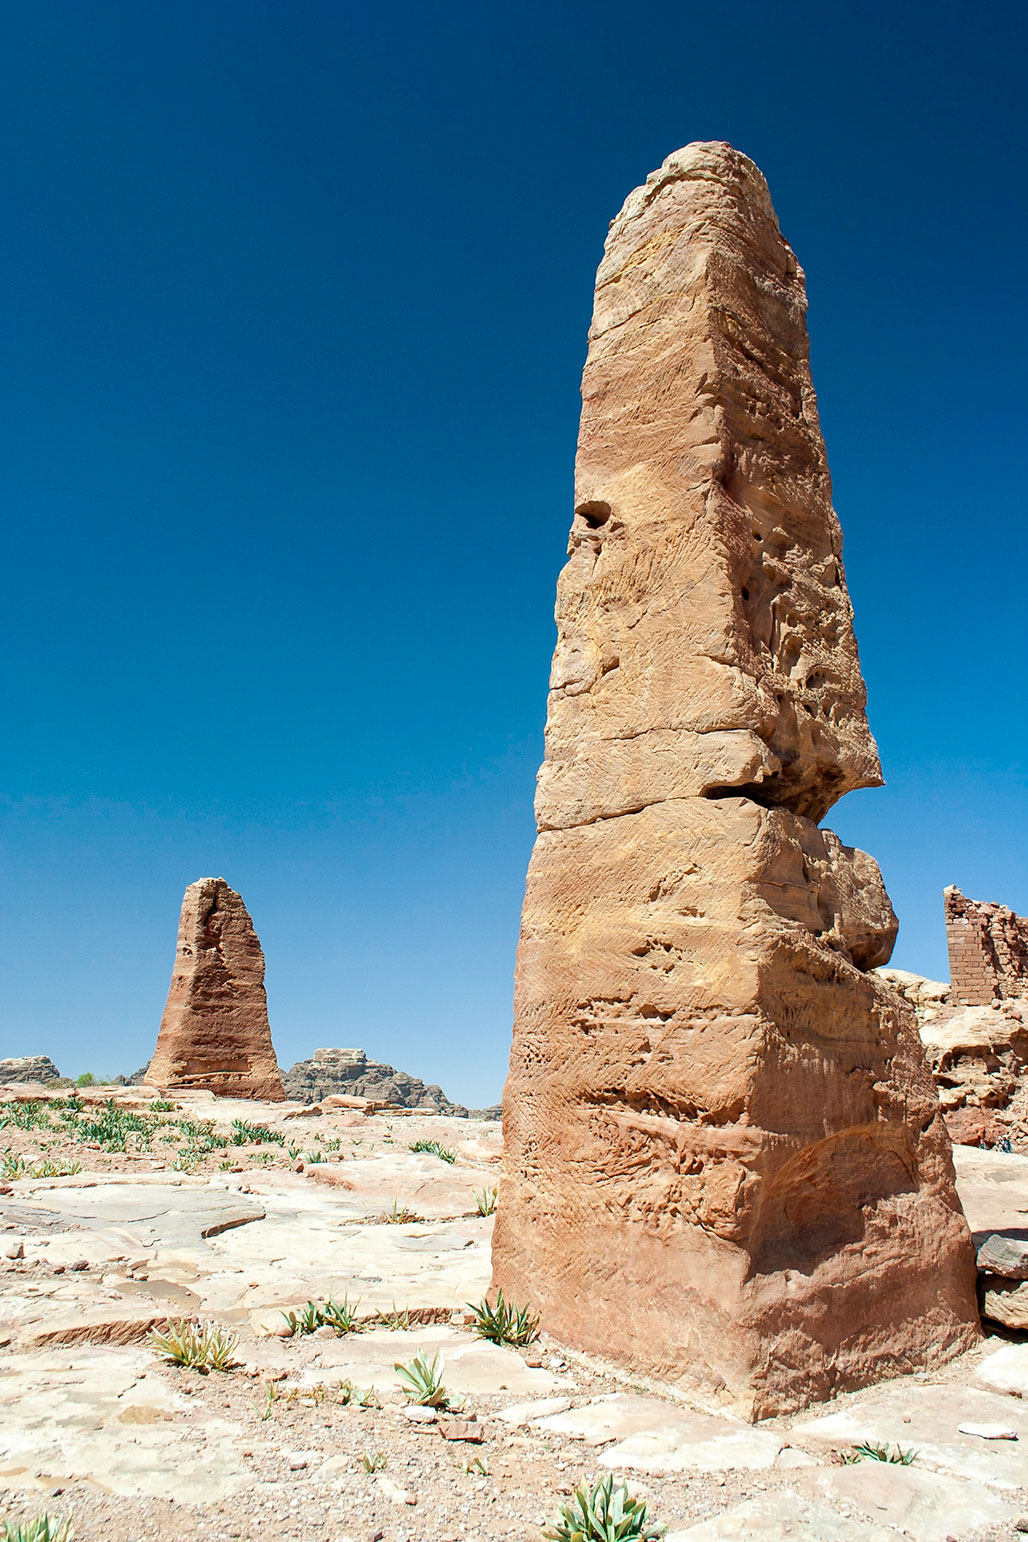 Obelisks at the High Place of Sacrifice